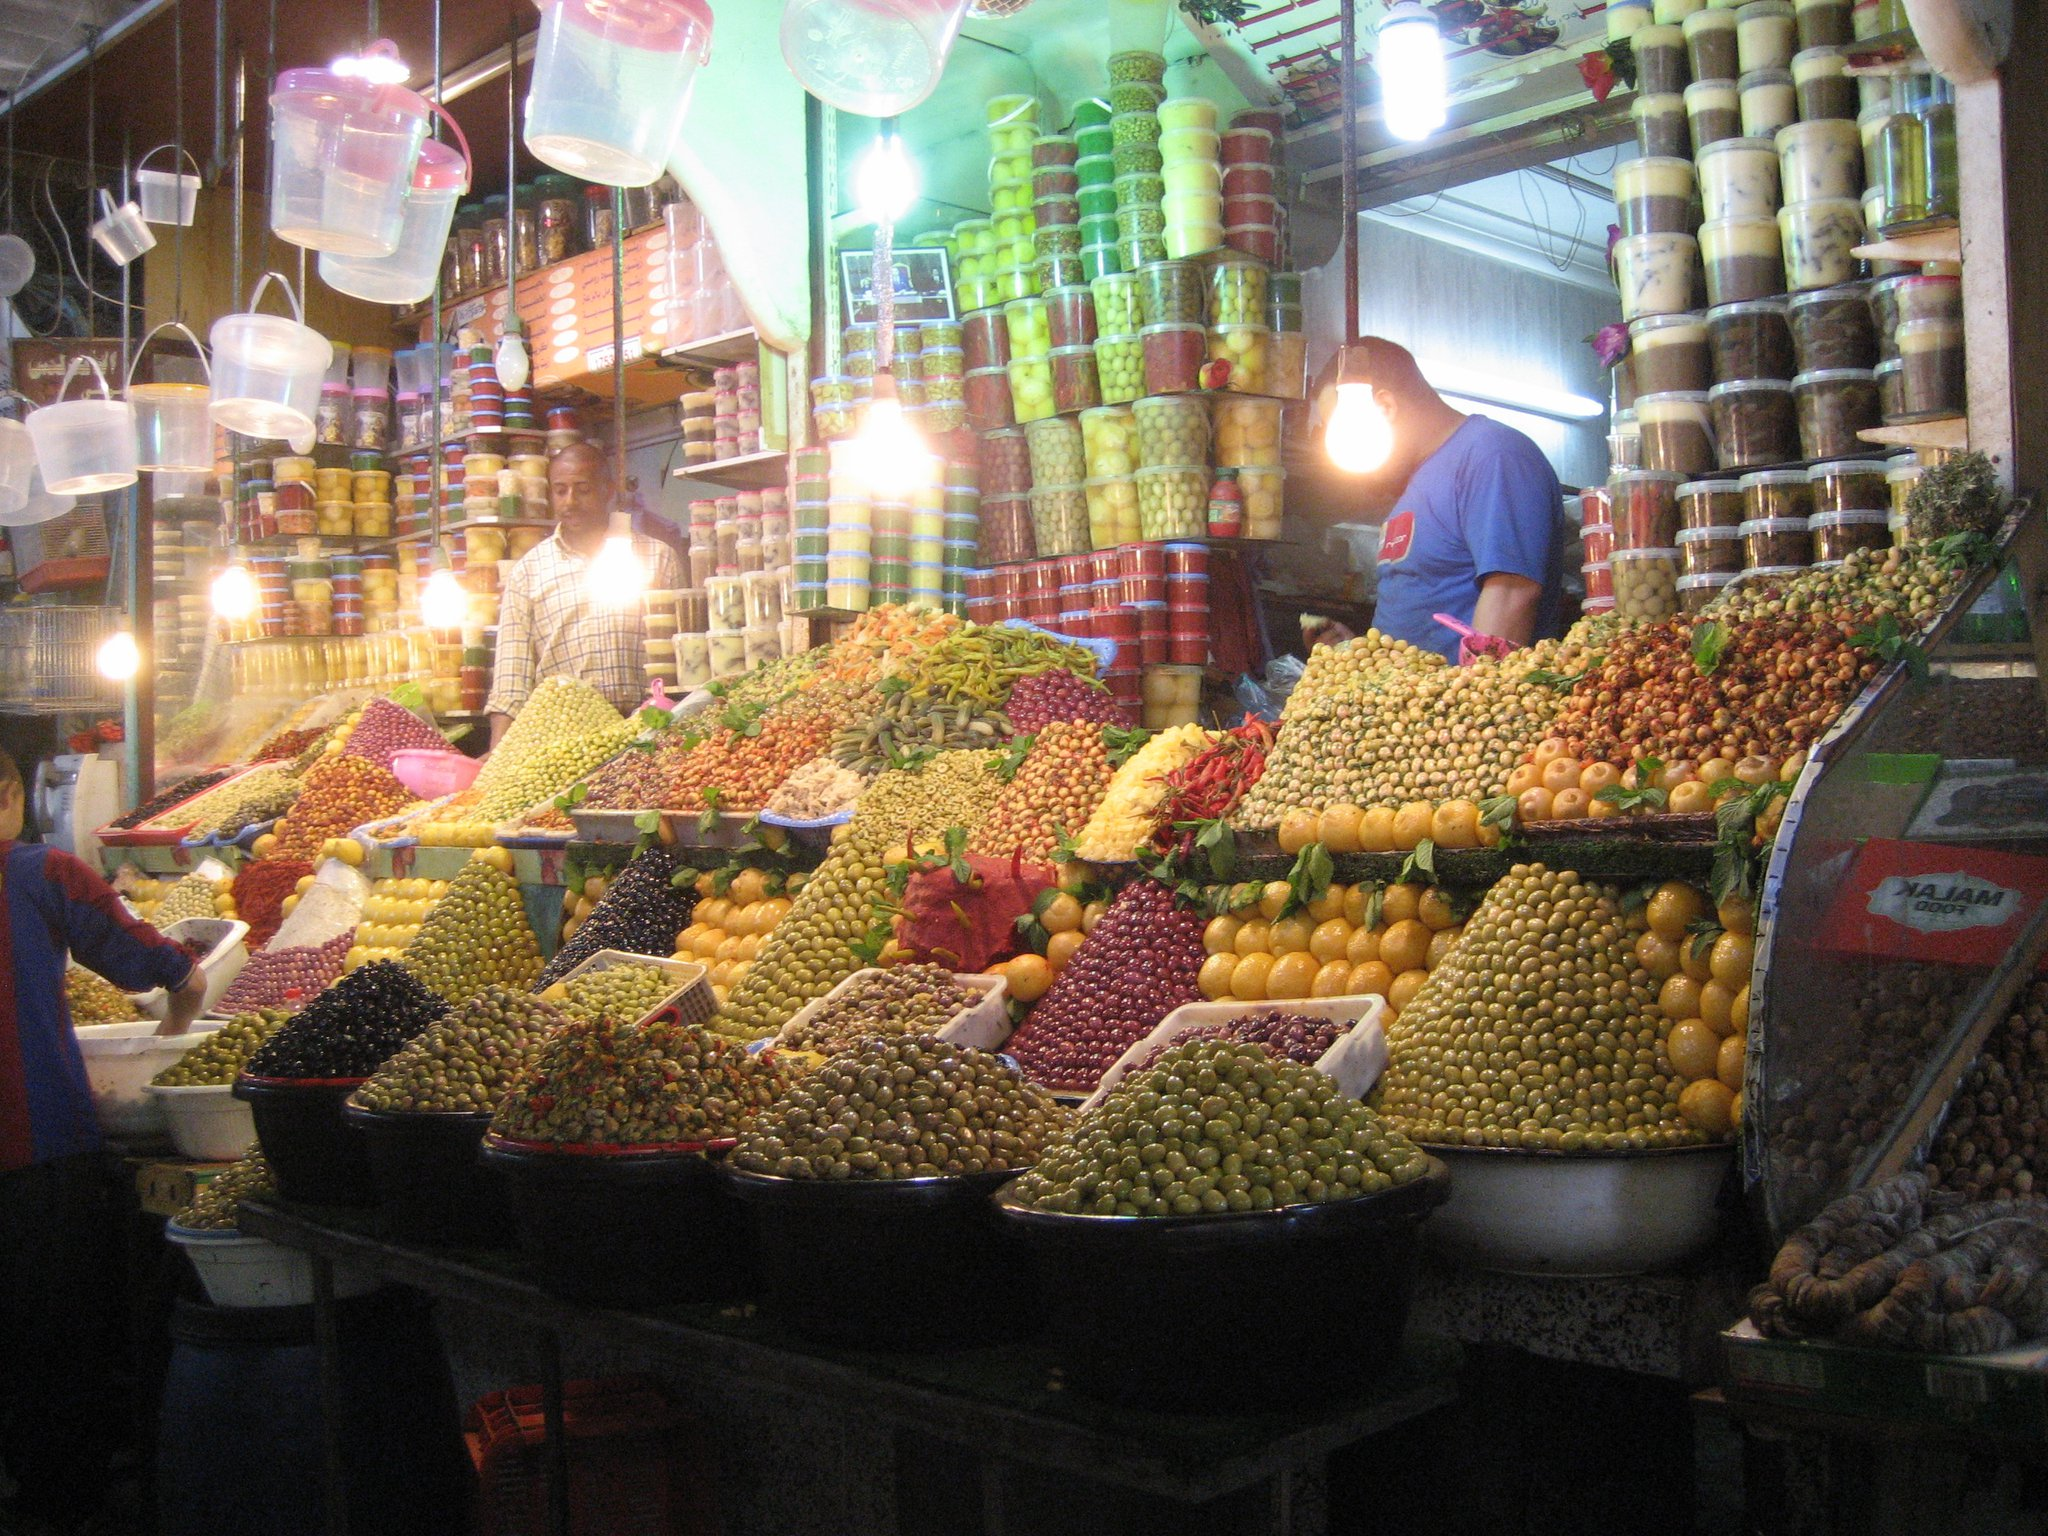 selling olives in Morocco